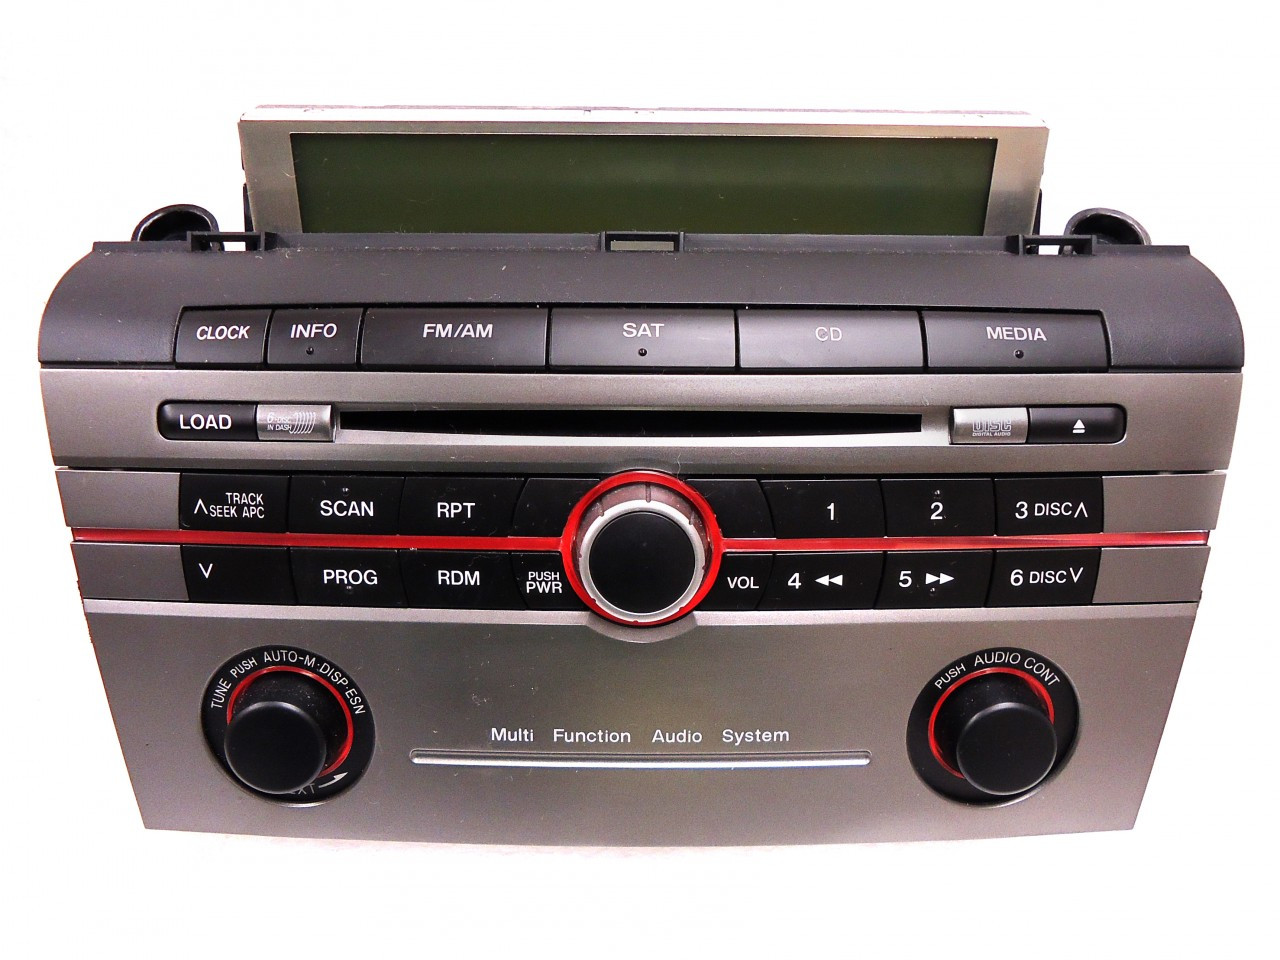 medium resolution of mazda 3 radio stereo 6 disc changer cd player sat multi function audio system br9k66arx bose